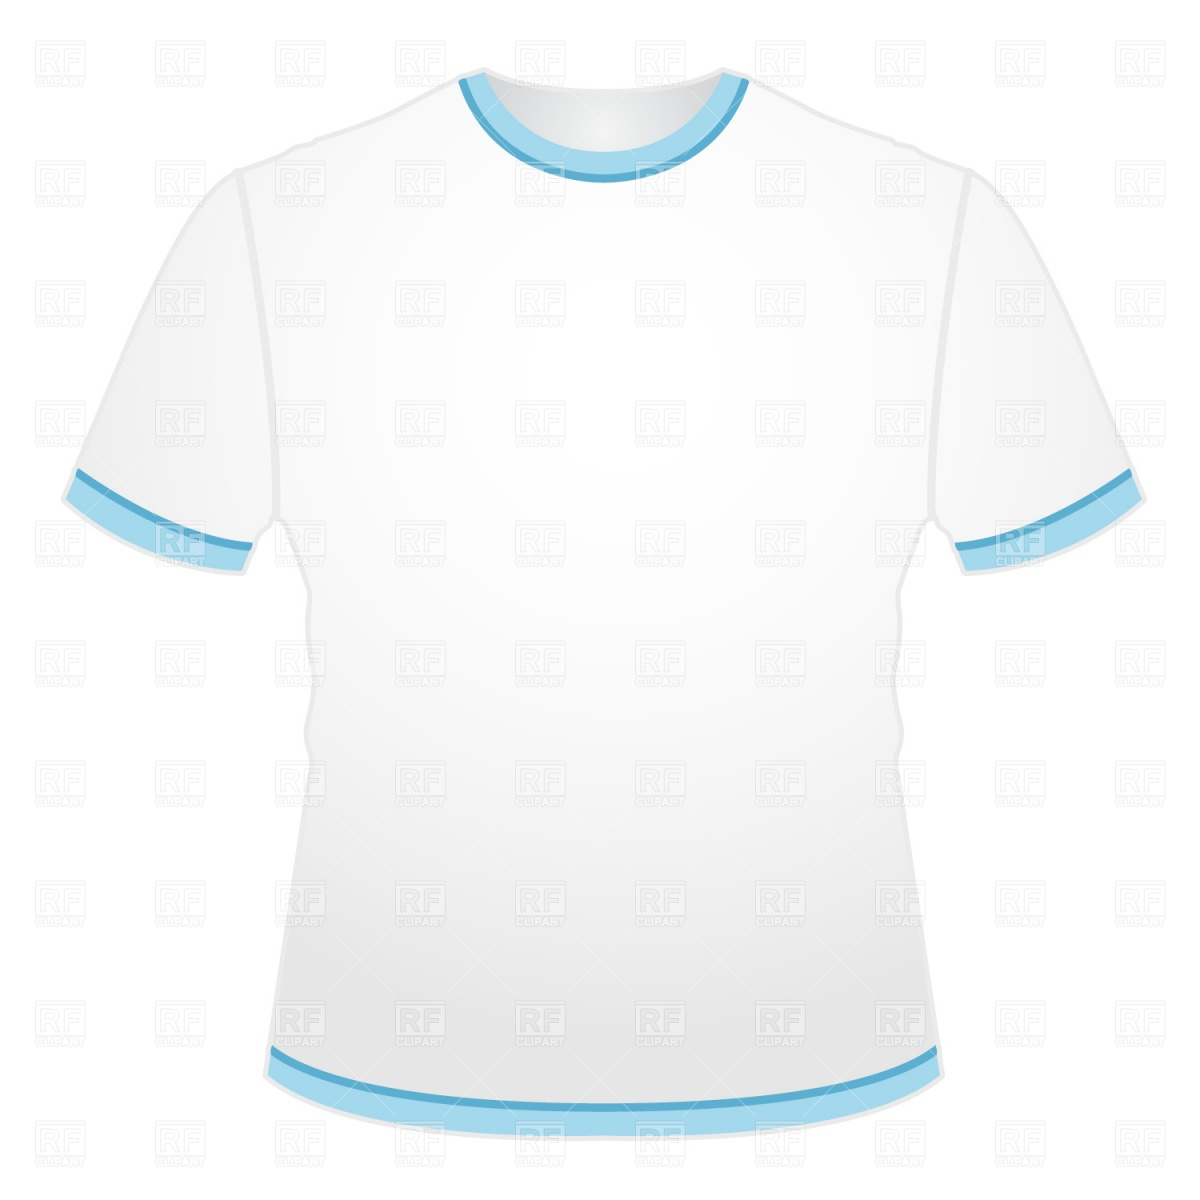 Blank T-shirt Clipart - Clipart Kid